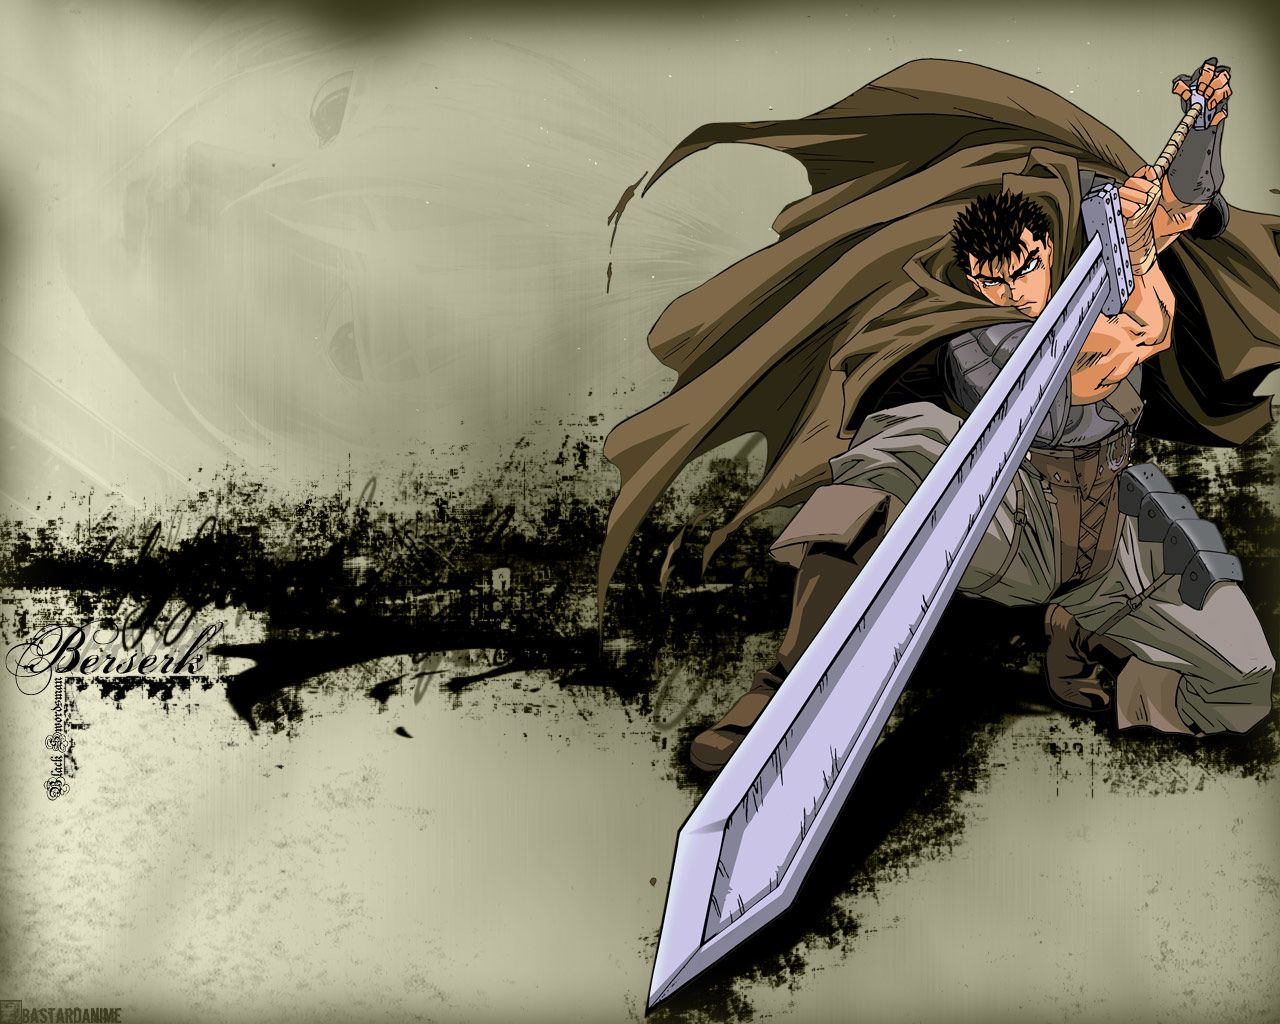 Anime Berserk Gaz Guts Berserk Wallpaper Images For Drawings